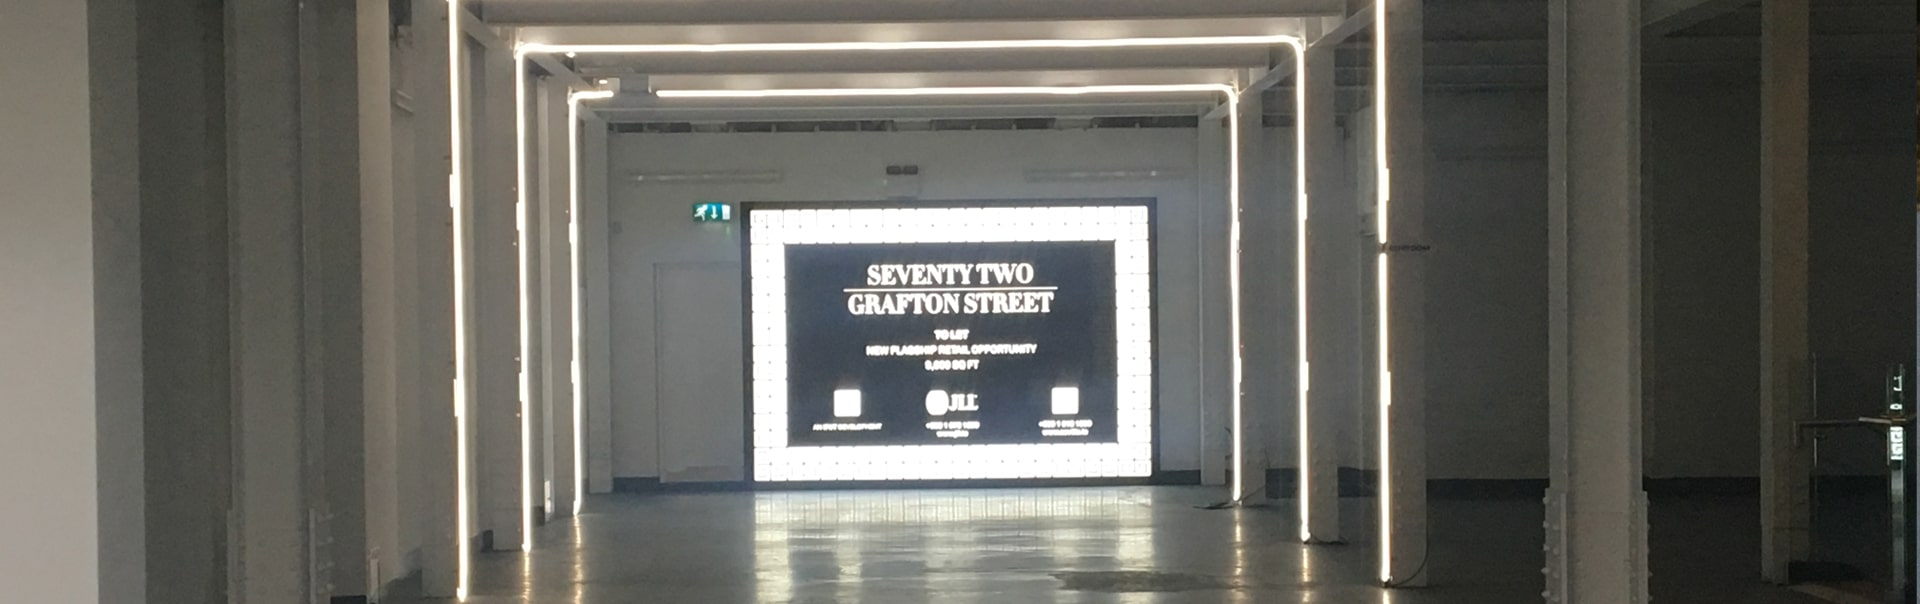 Lightbox Signs | 72 Grafton Street | Flex Face Lightbox